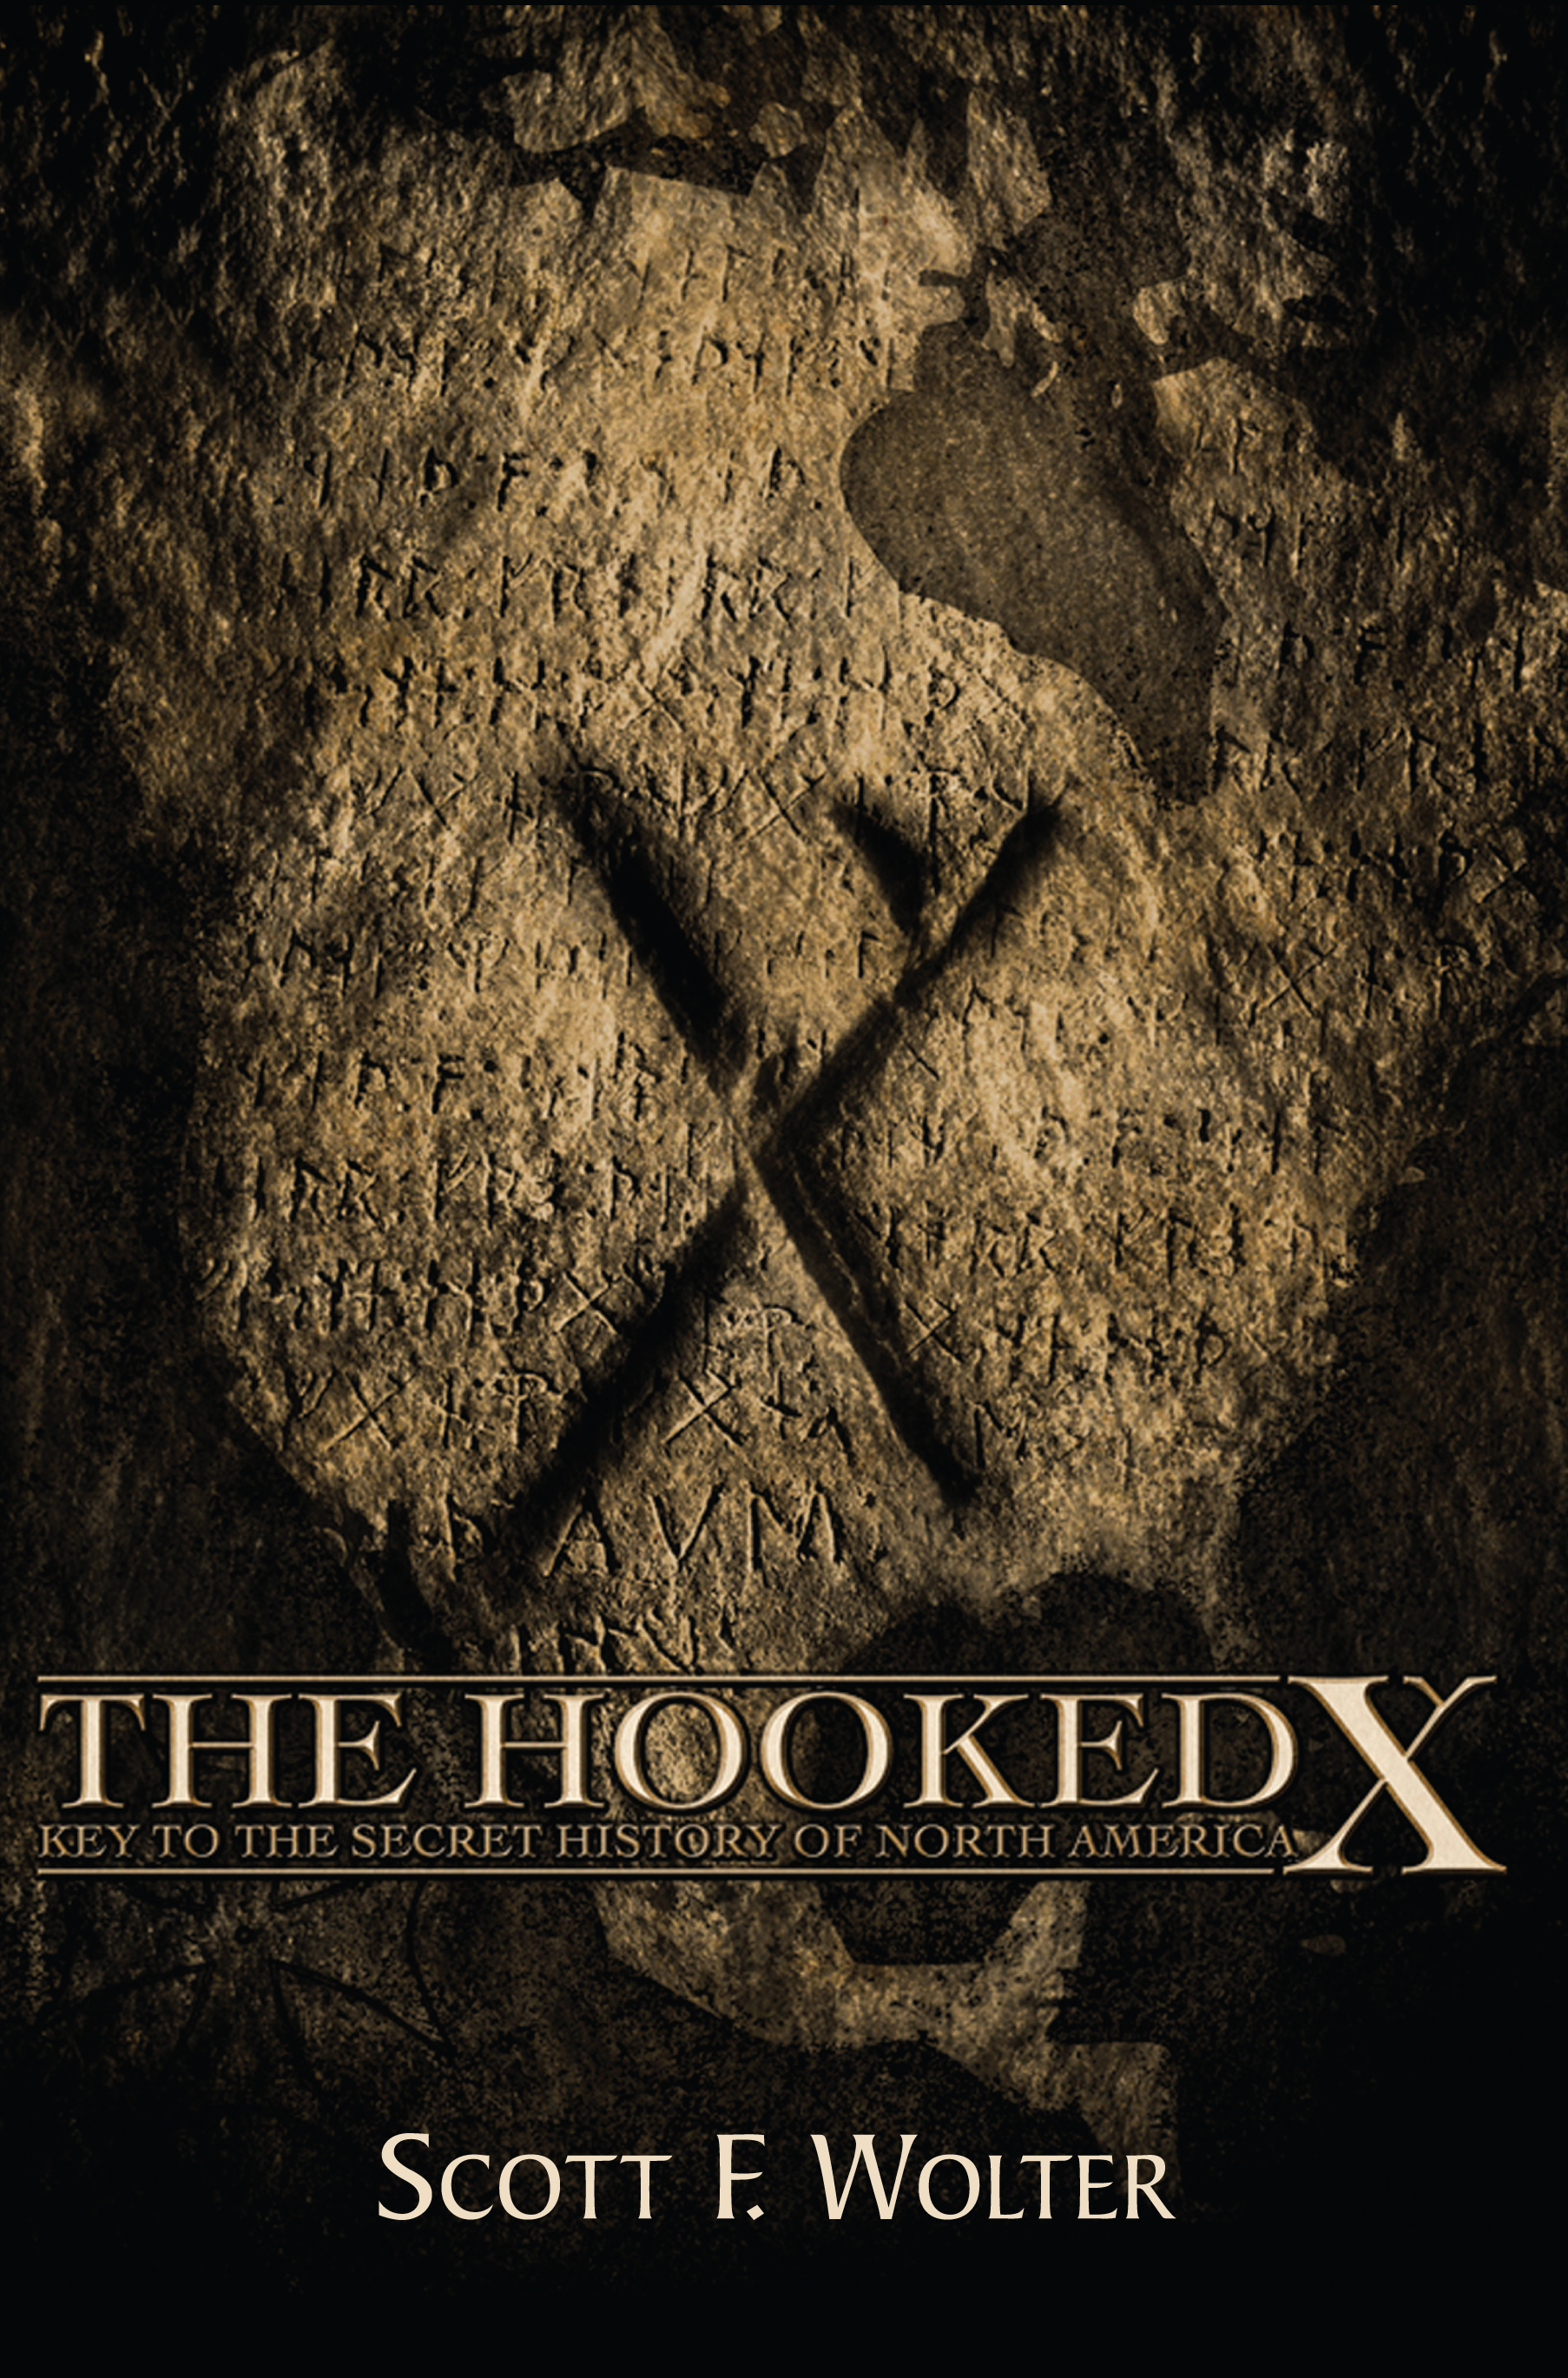 The Hooked X